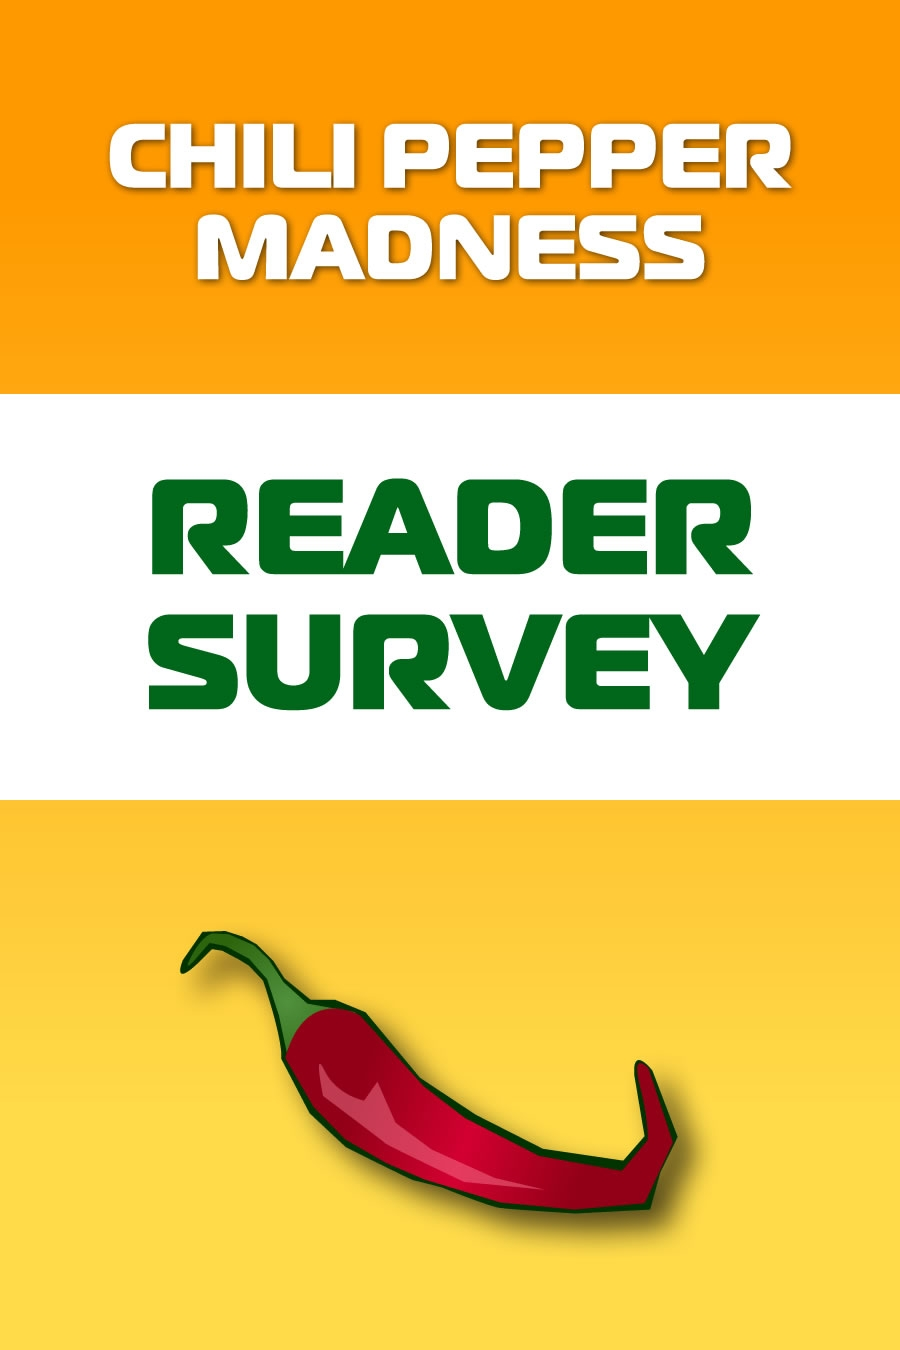 Chili Pepper Madness Reader Survey